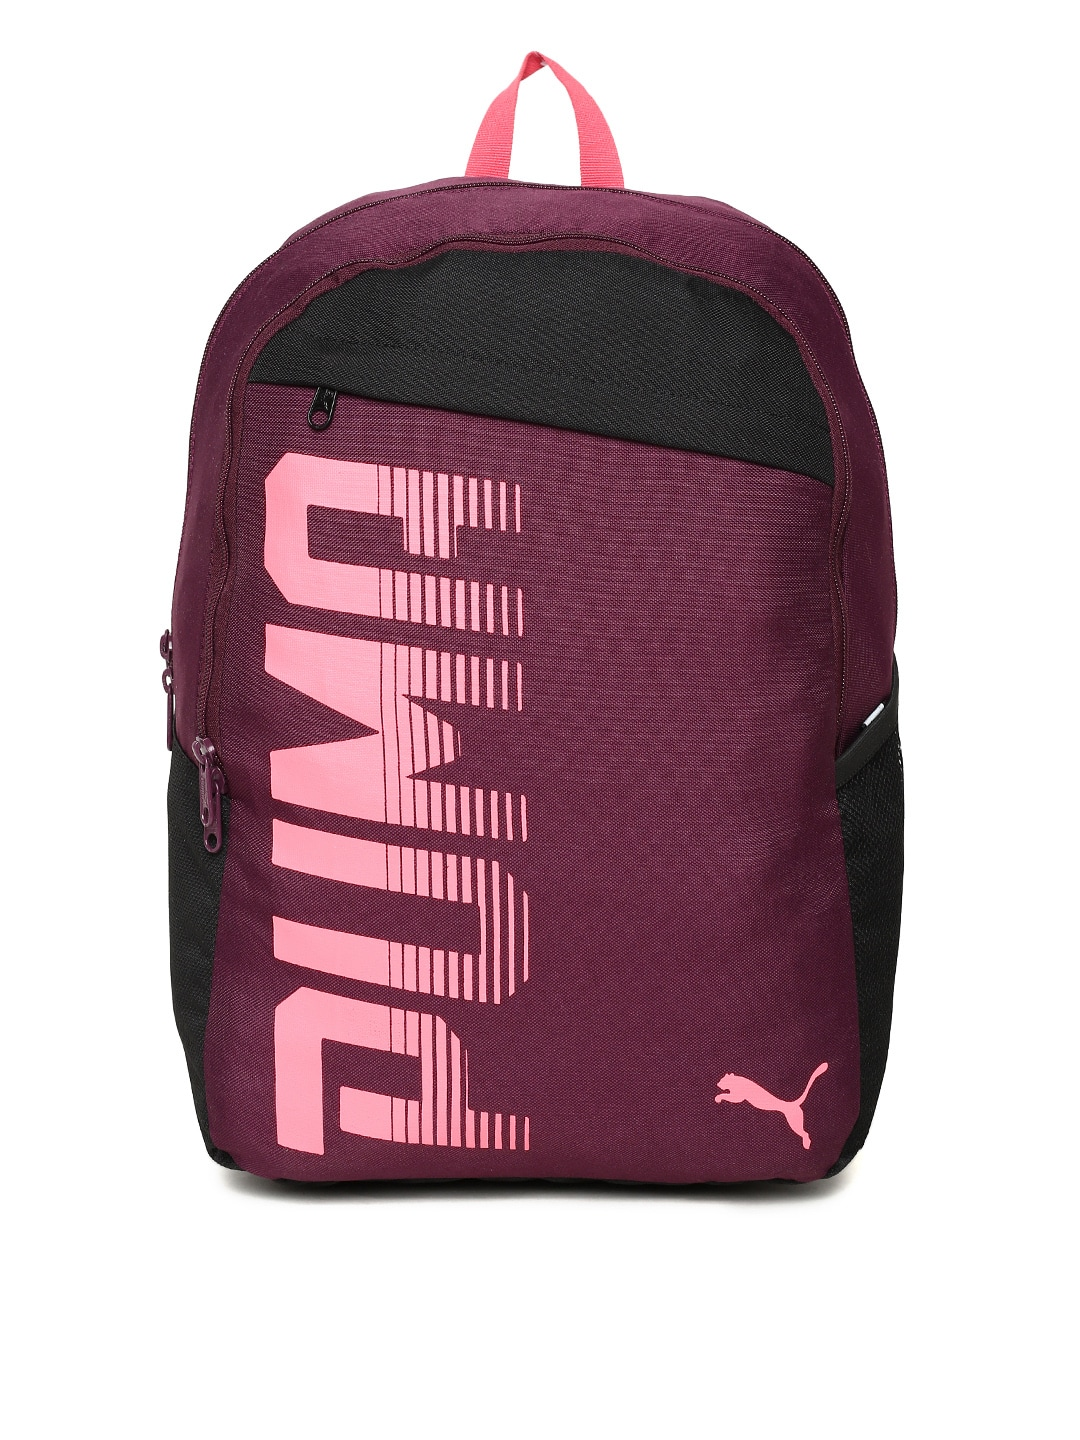 Puma Myntra Bags Backpacks - Buy Puma Myntra Bags Backpacks online in India c52a534176f74